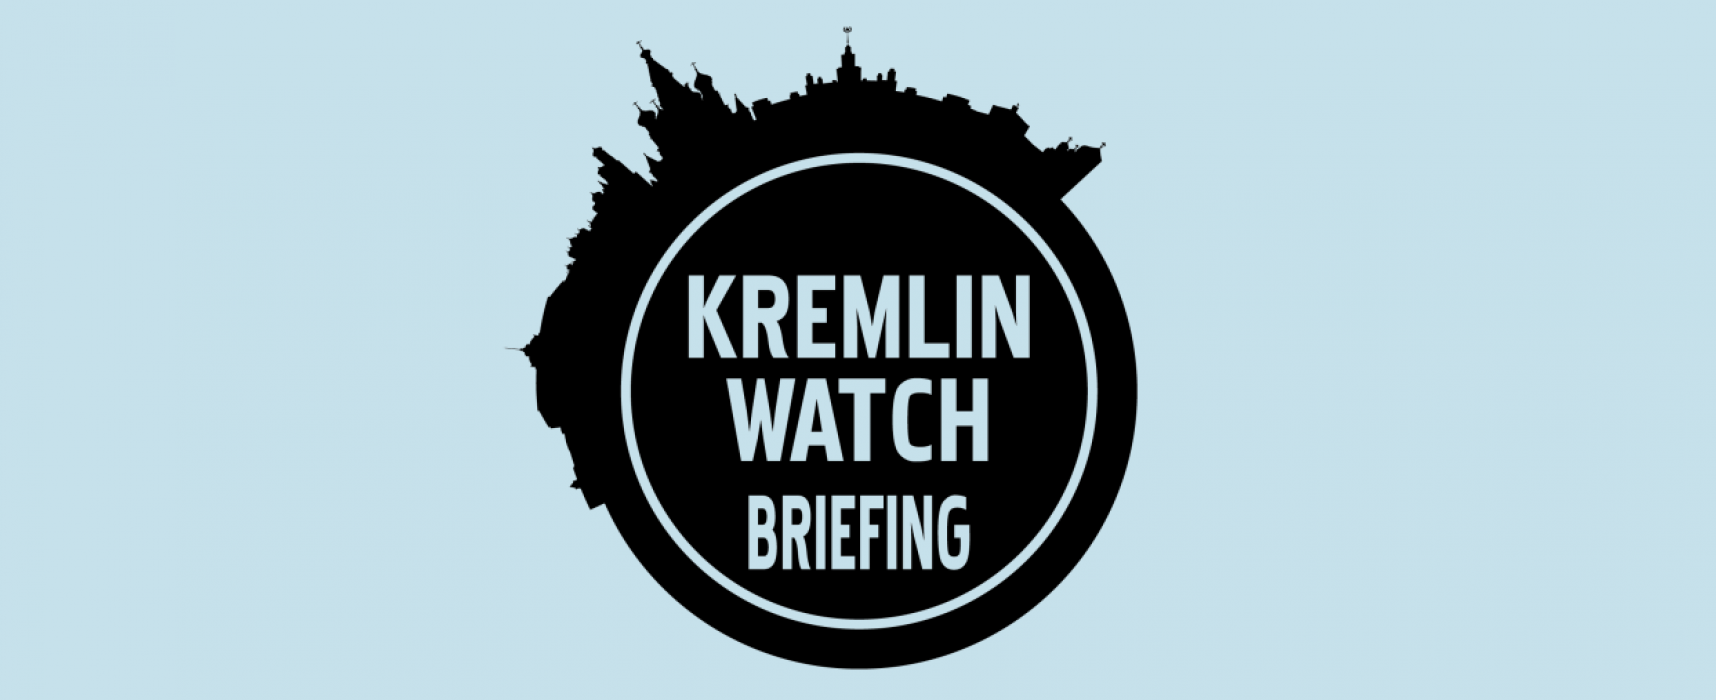 Kremlin Watch Briefing: Are Russian media victims of the West?